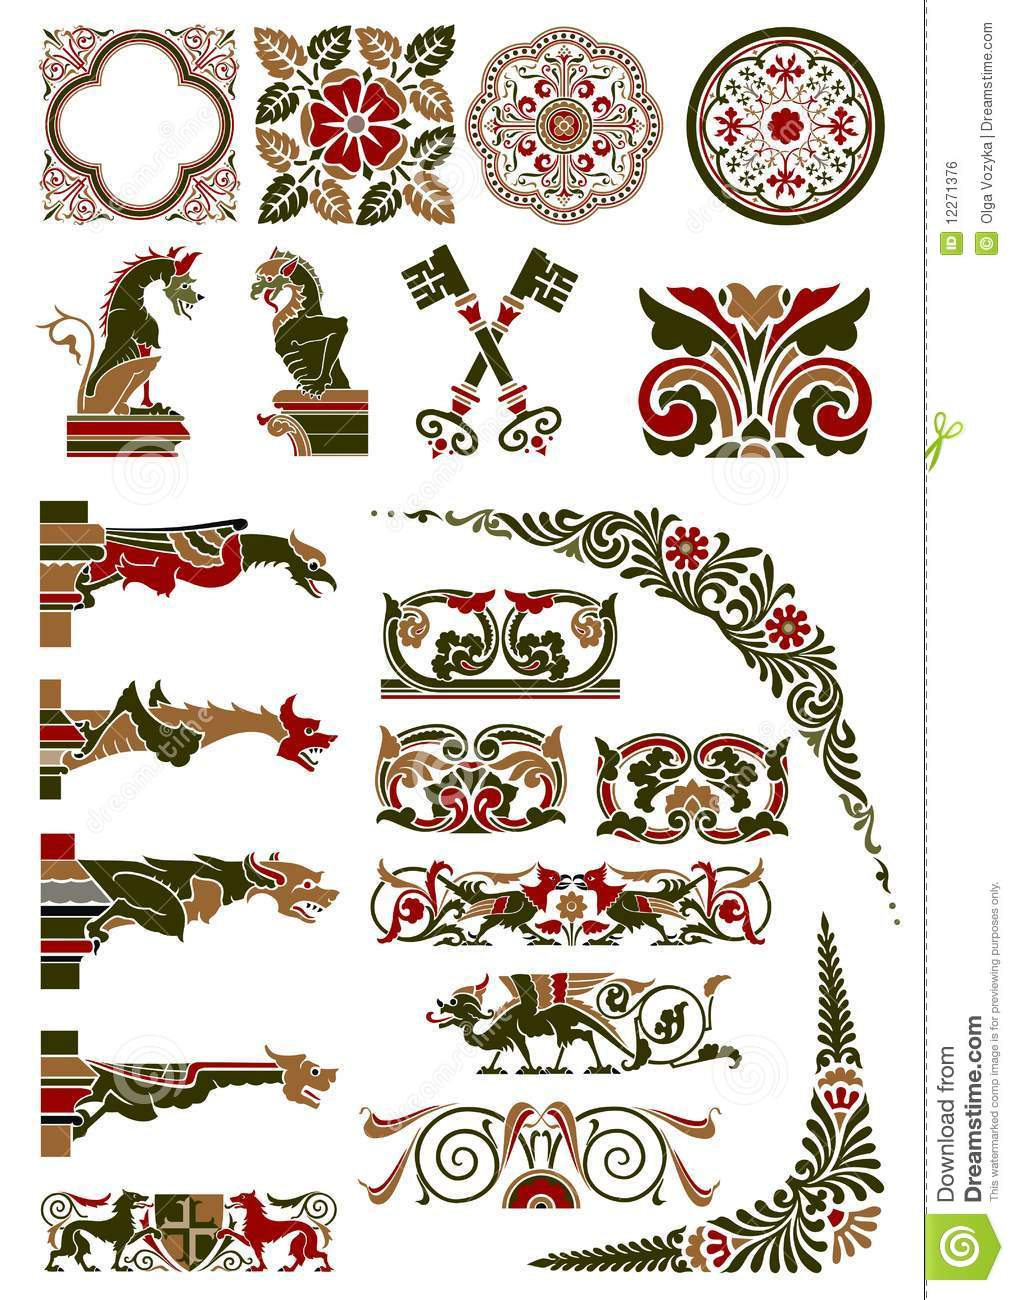 Medieval Motif Collection Royalty Free Stock Image Image